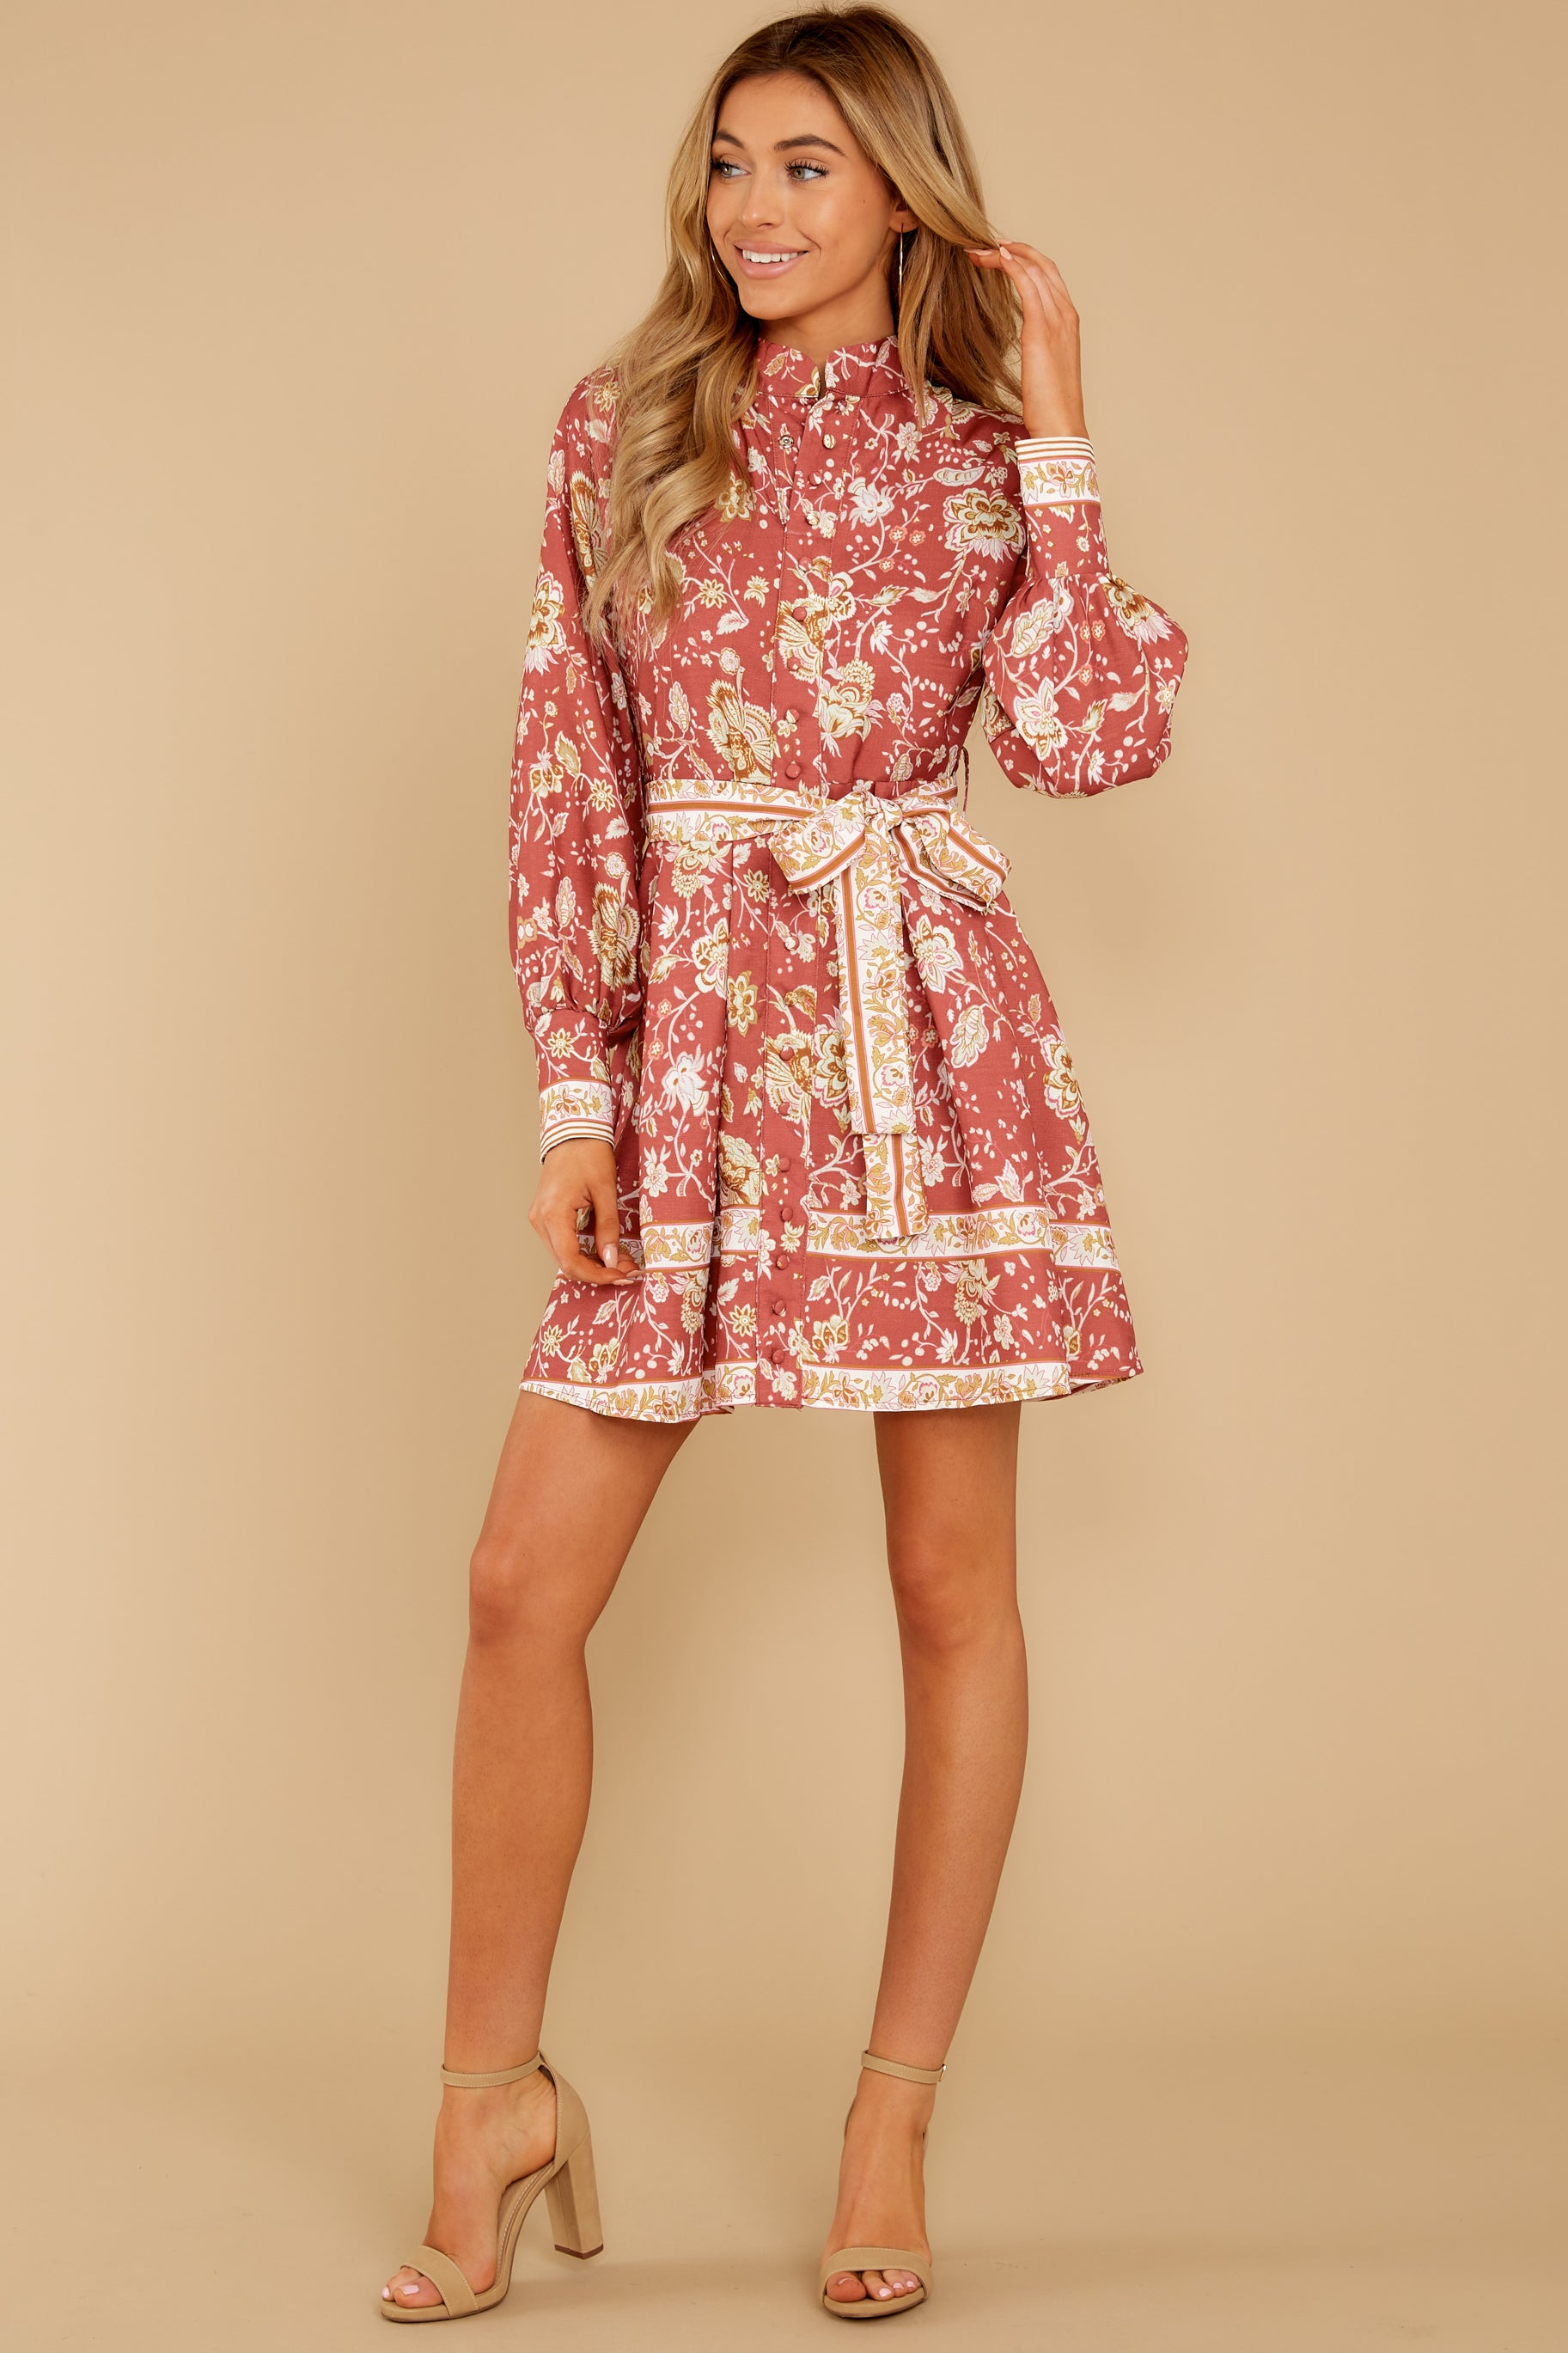 4 Certain Romance Rose Pink Floral Print Dress at reddressboutique.com